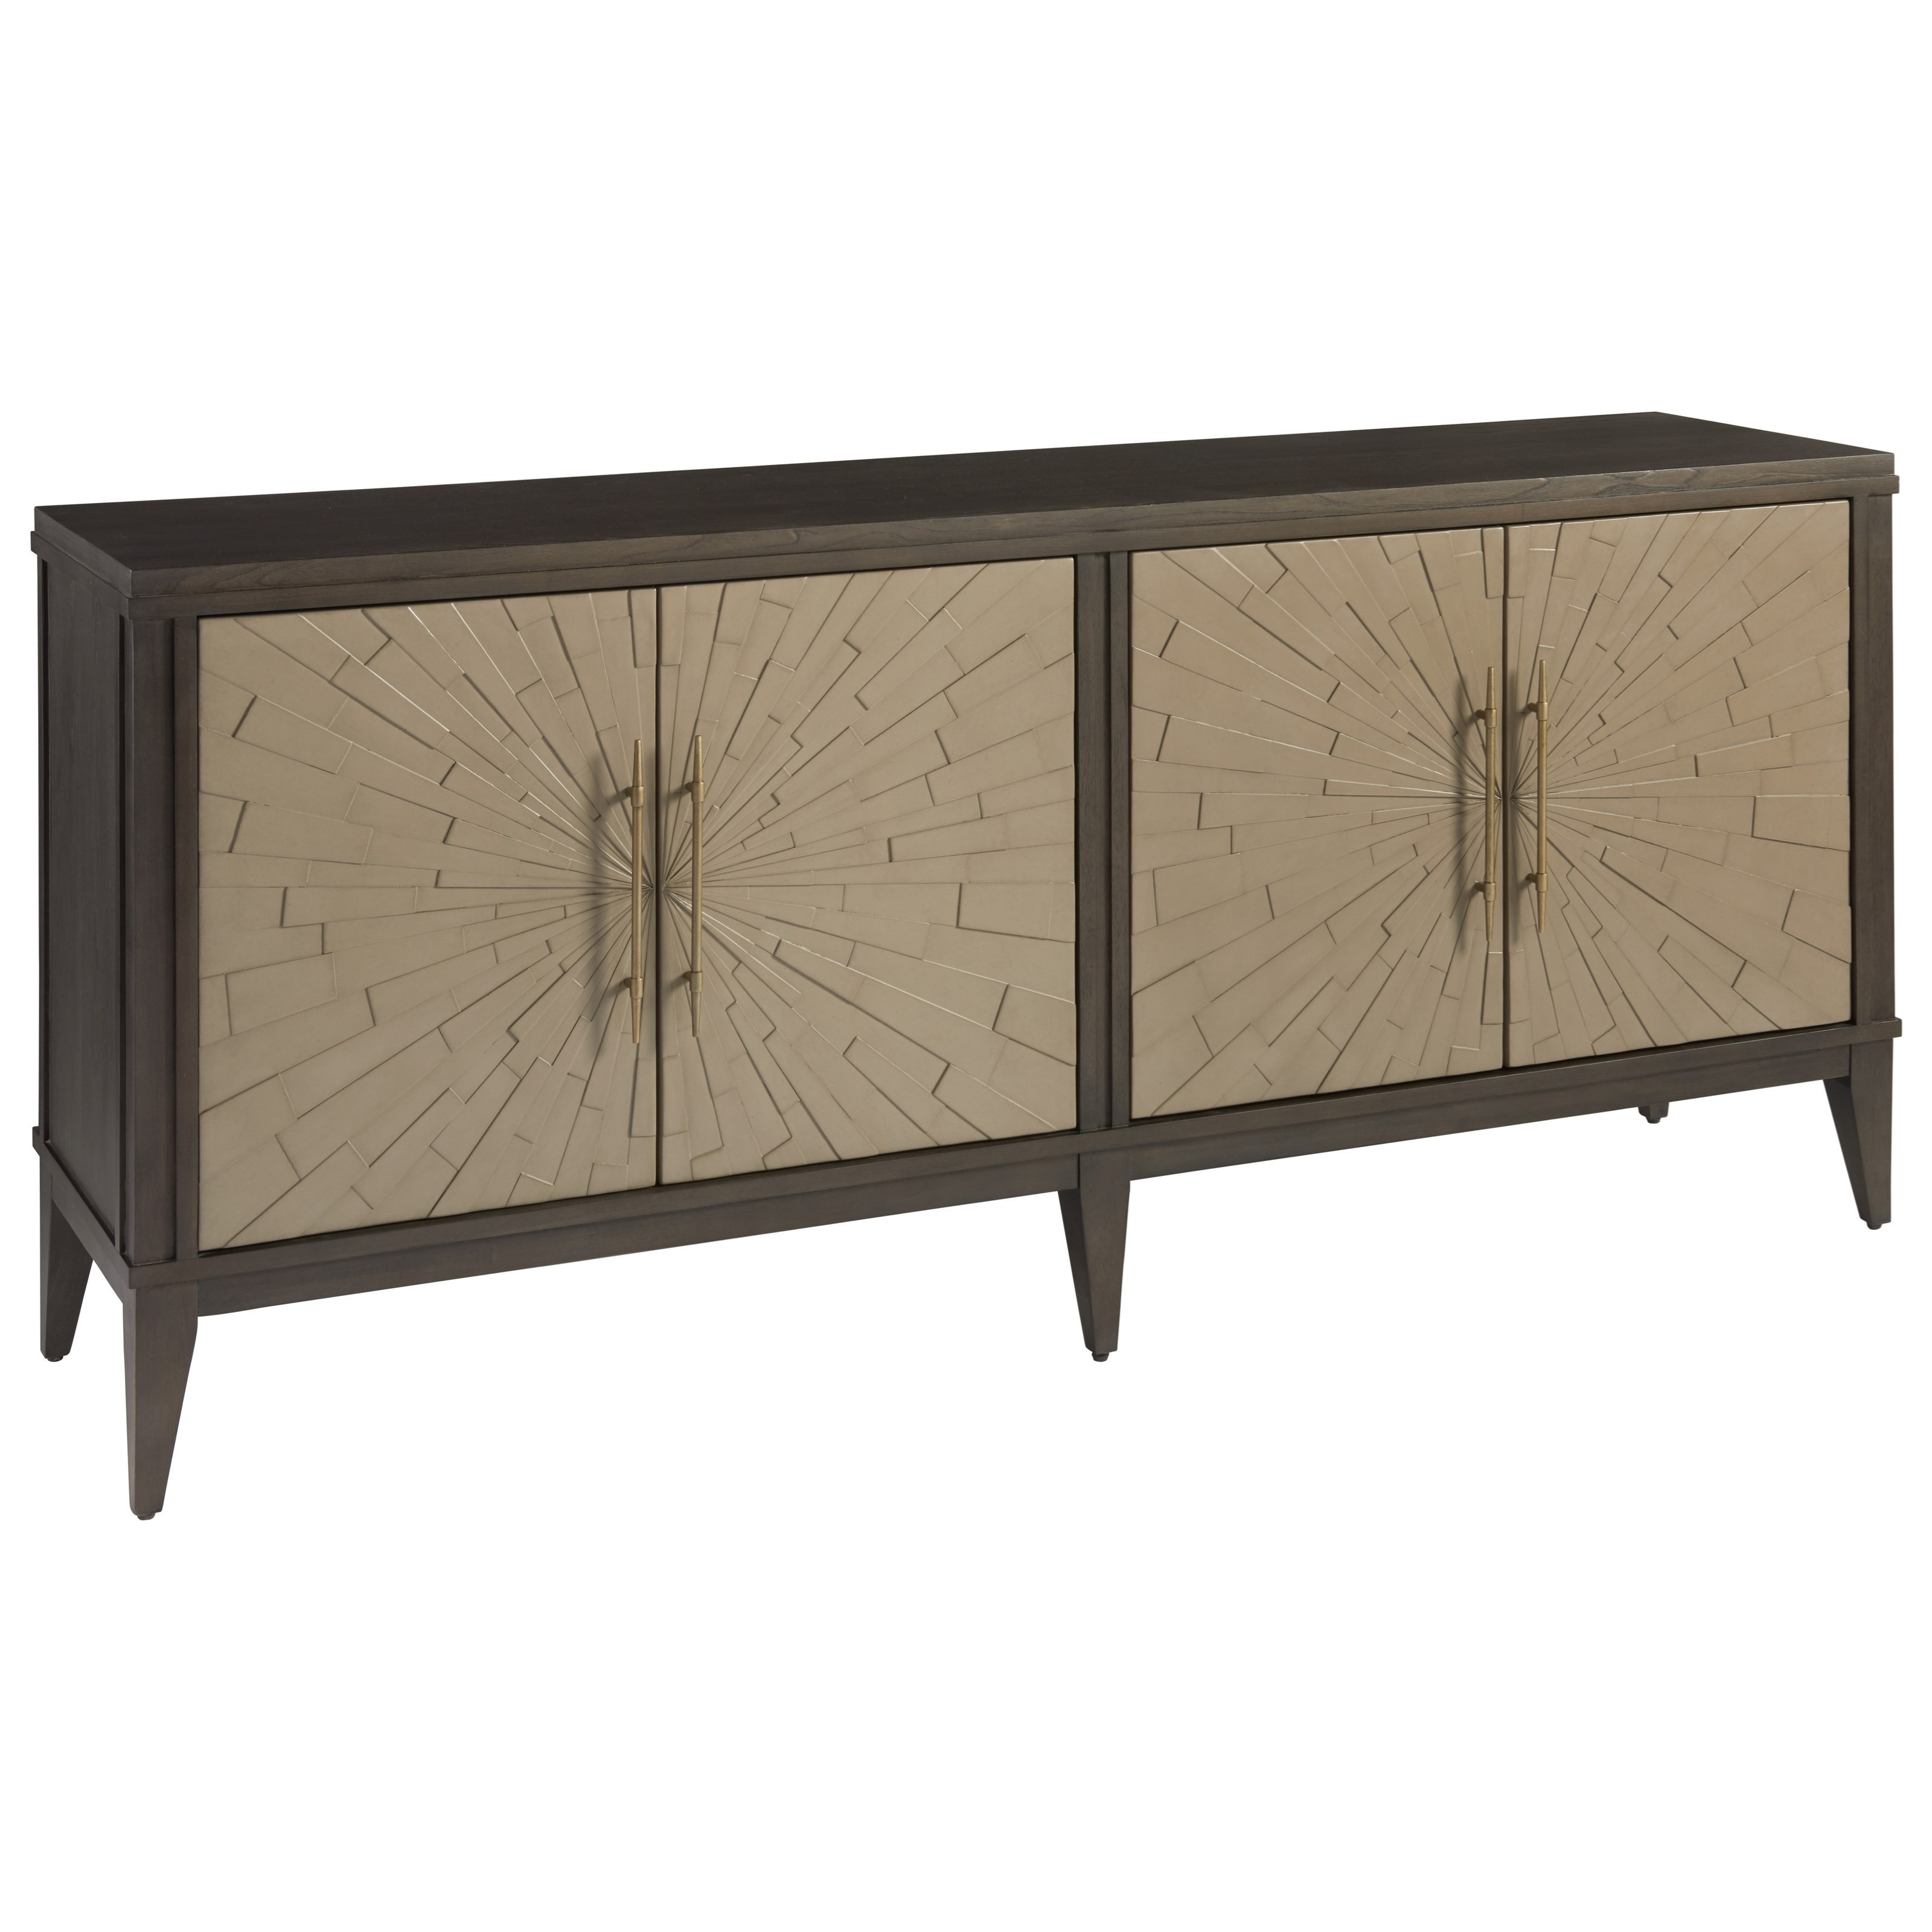 Soliloquy Arabella Credenza by Universal at Baer's Furniture